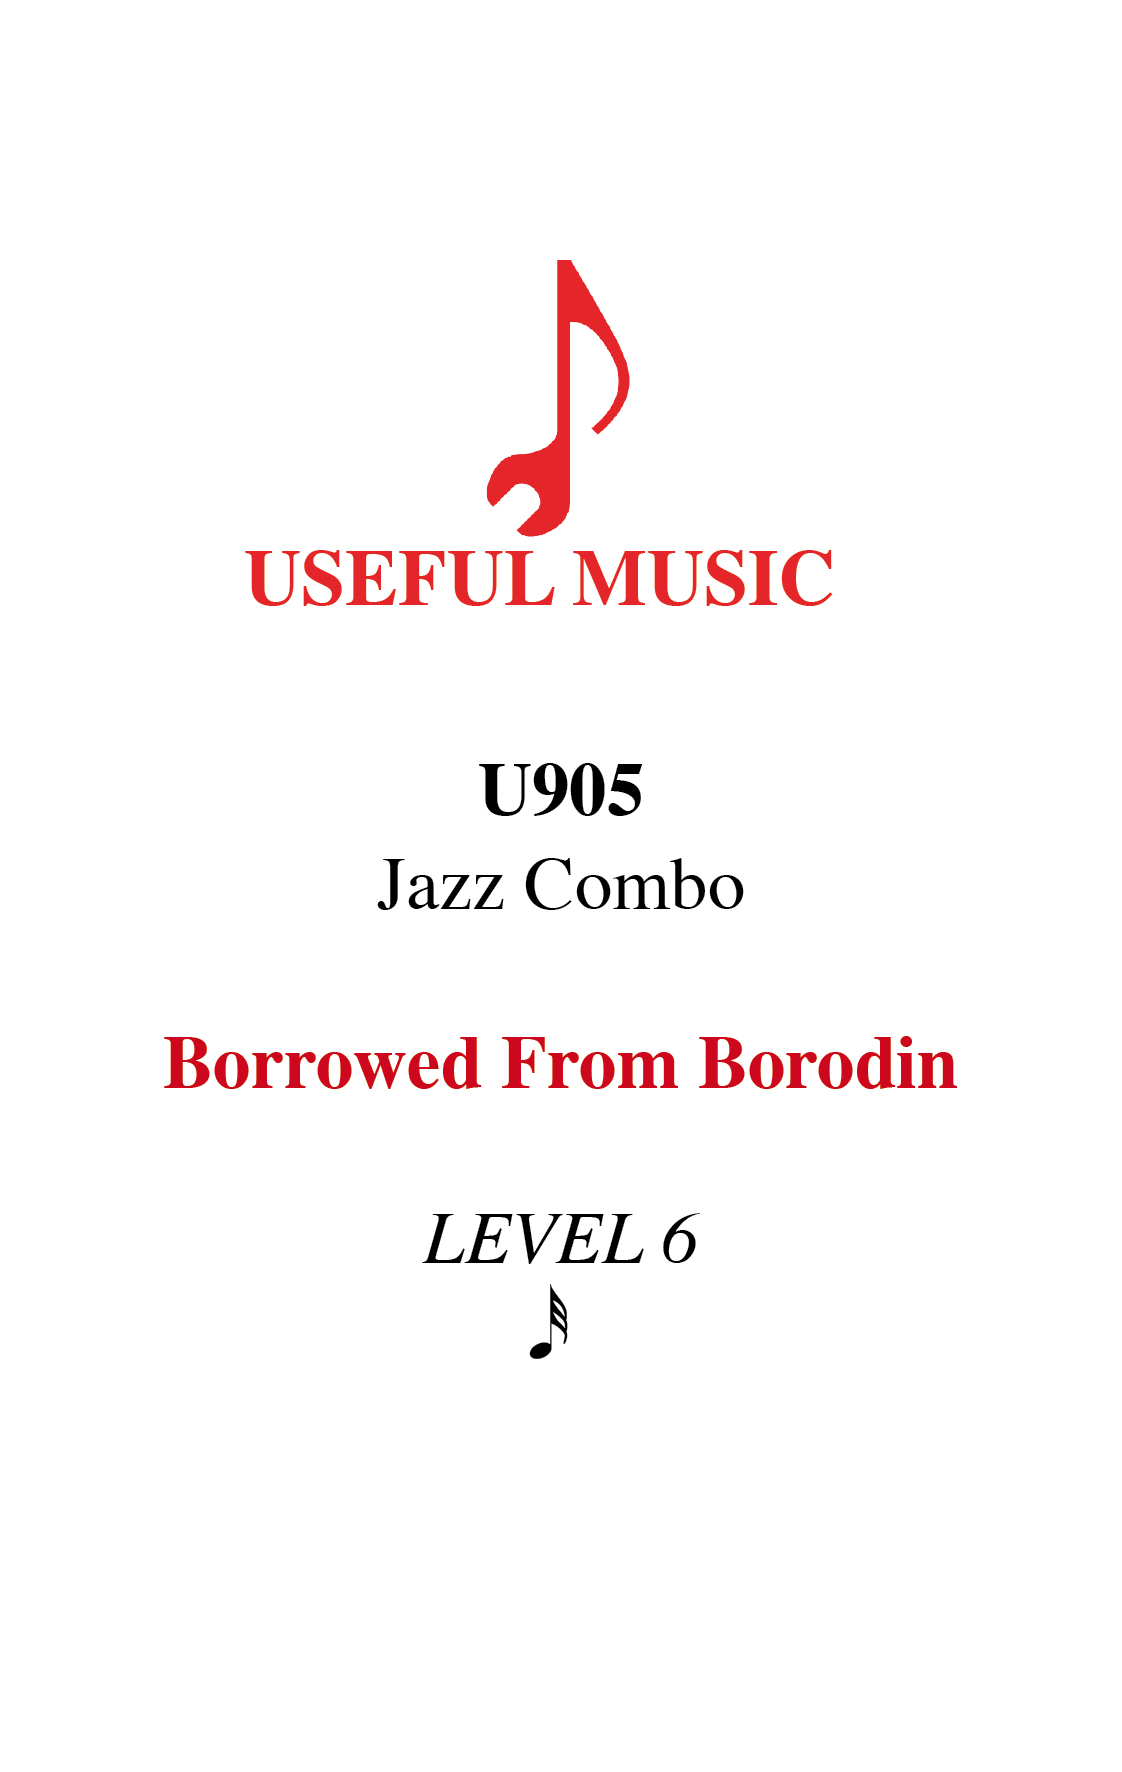 Borrowed from Borodin - Jazz Combo